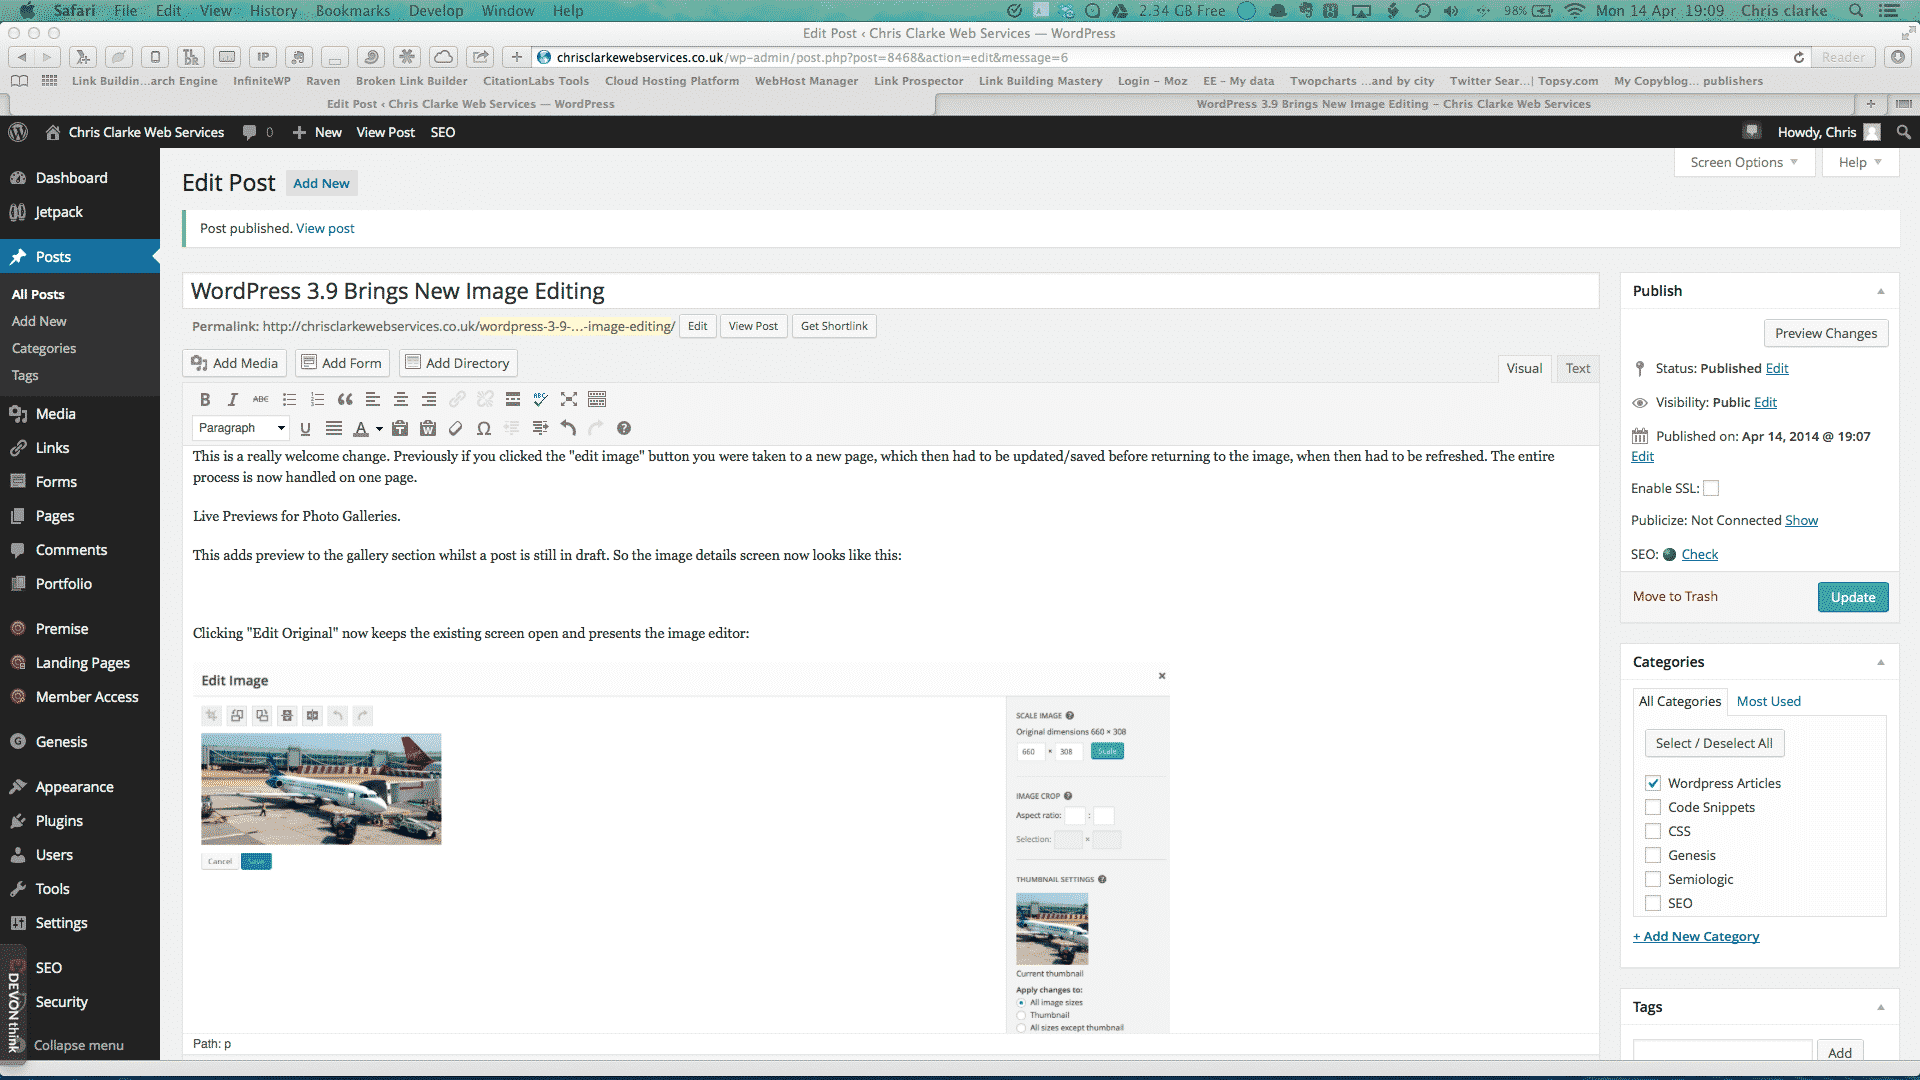 Image Editing with WordPress 3.9